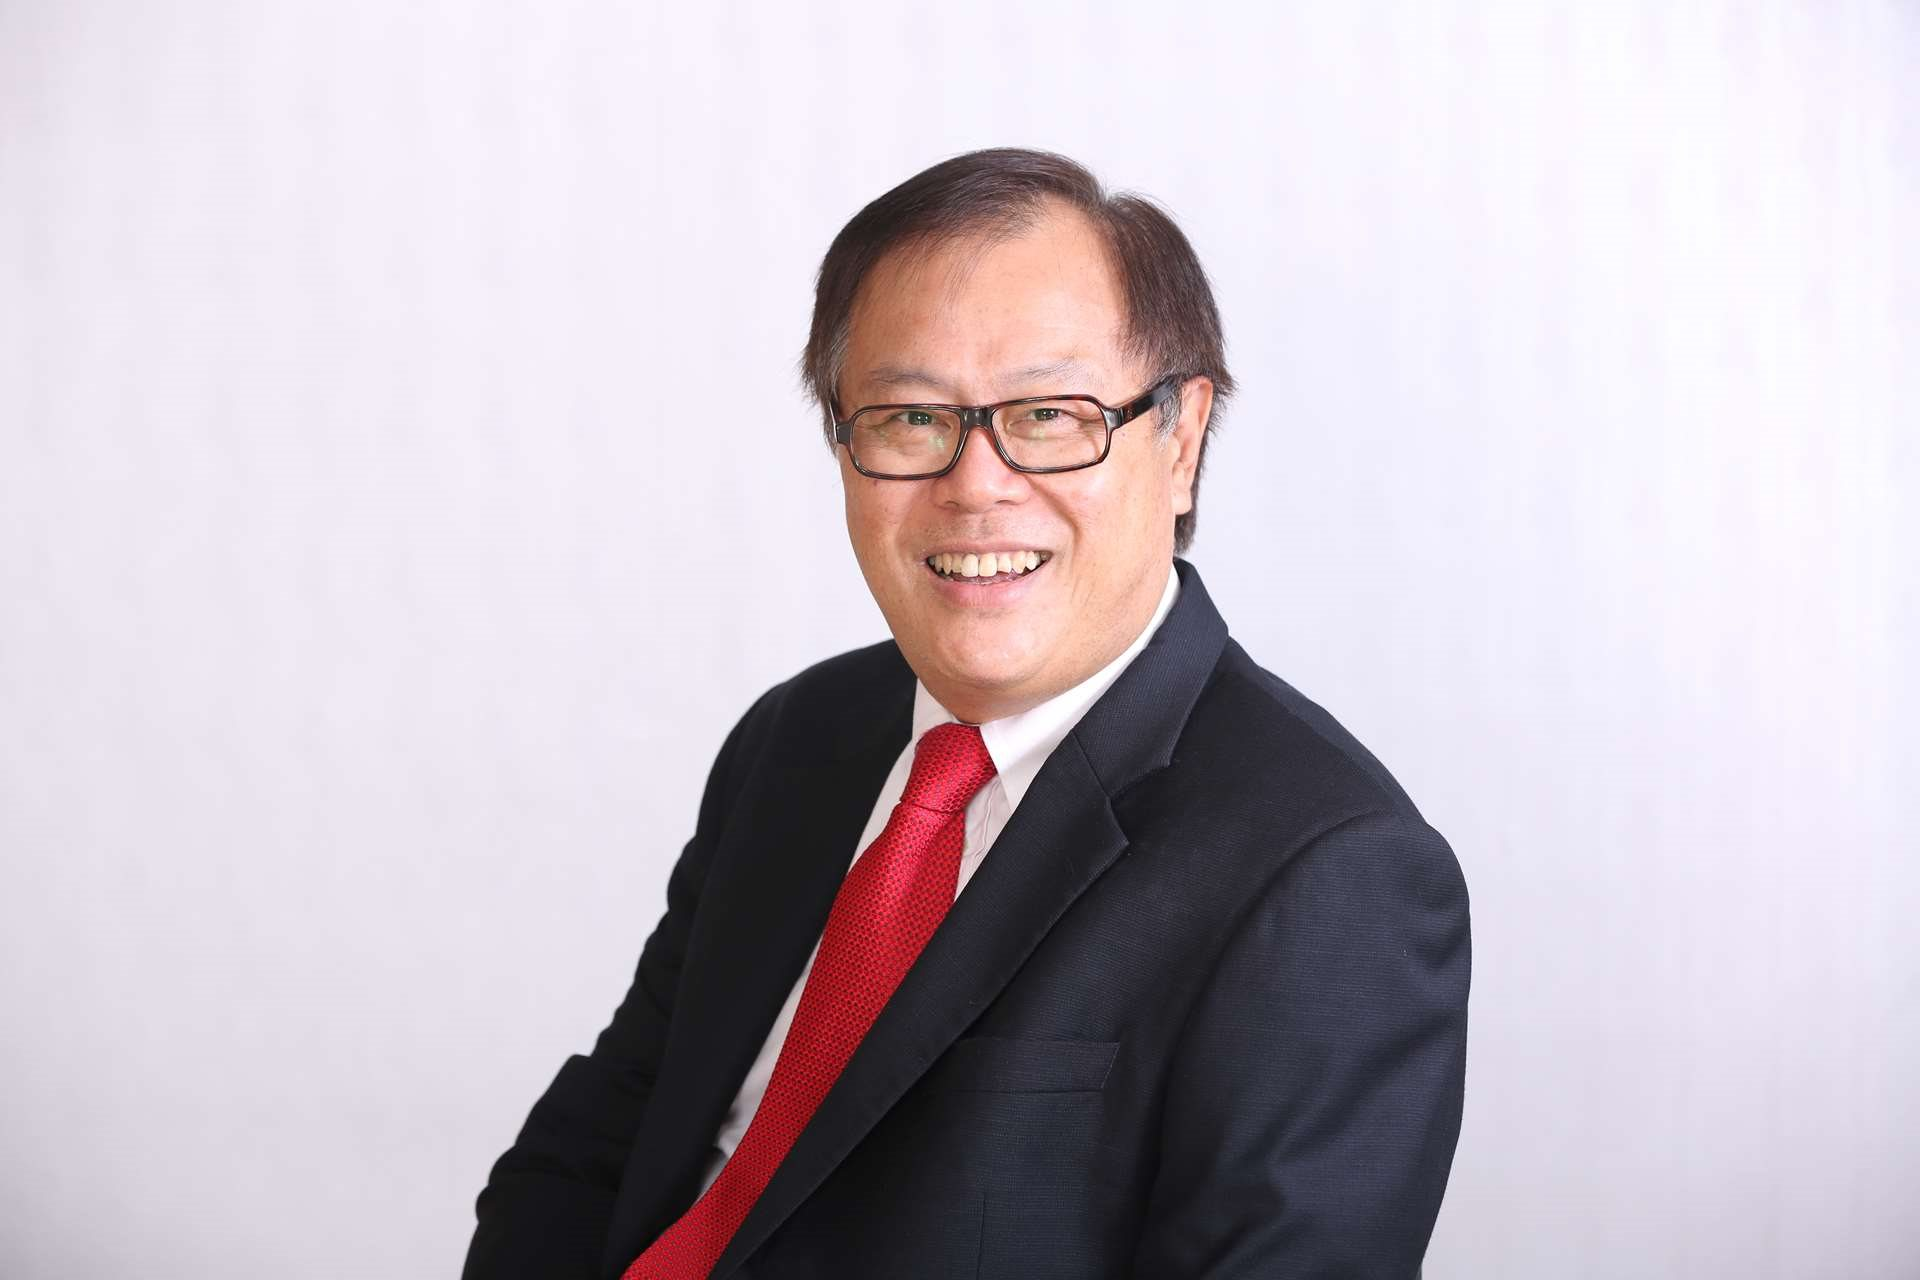 DATO' WONG WING SEONG, Executive Director, Advisory